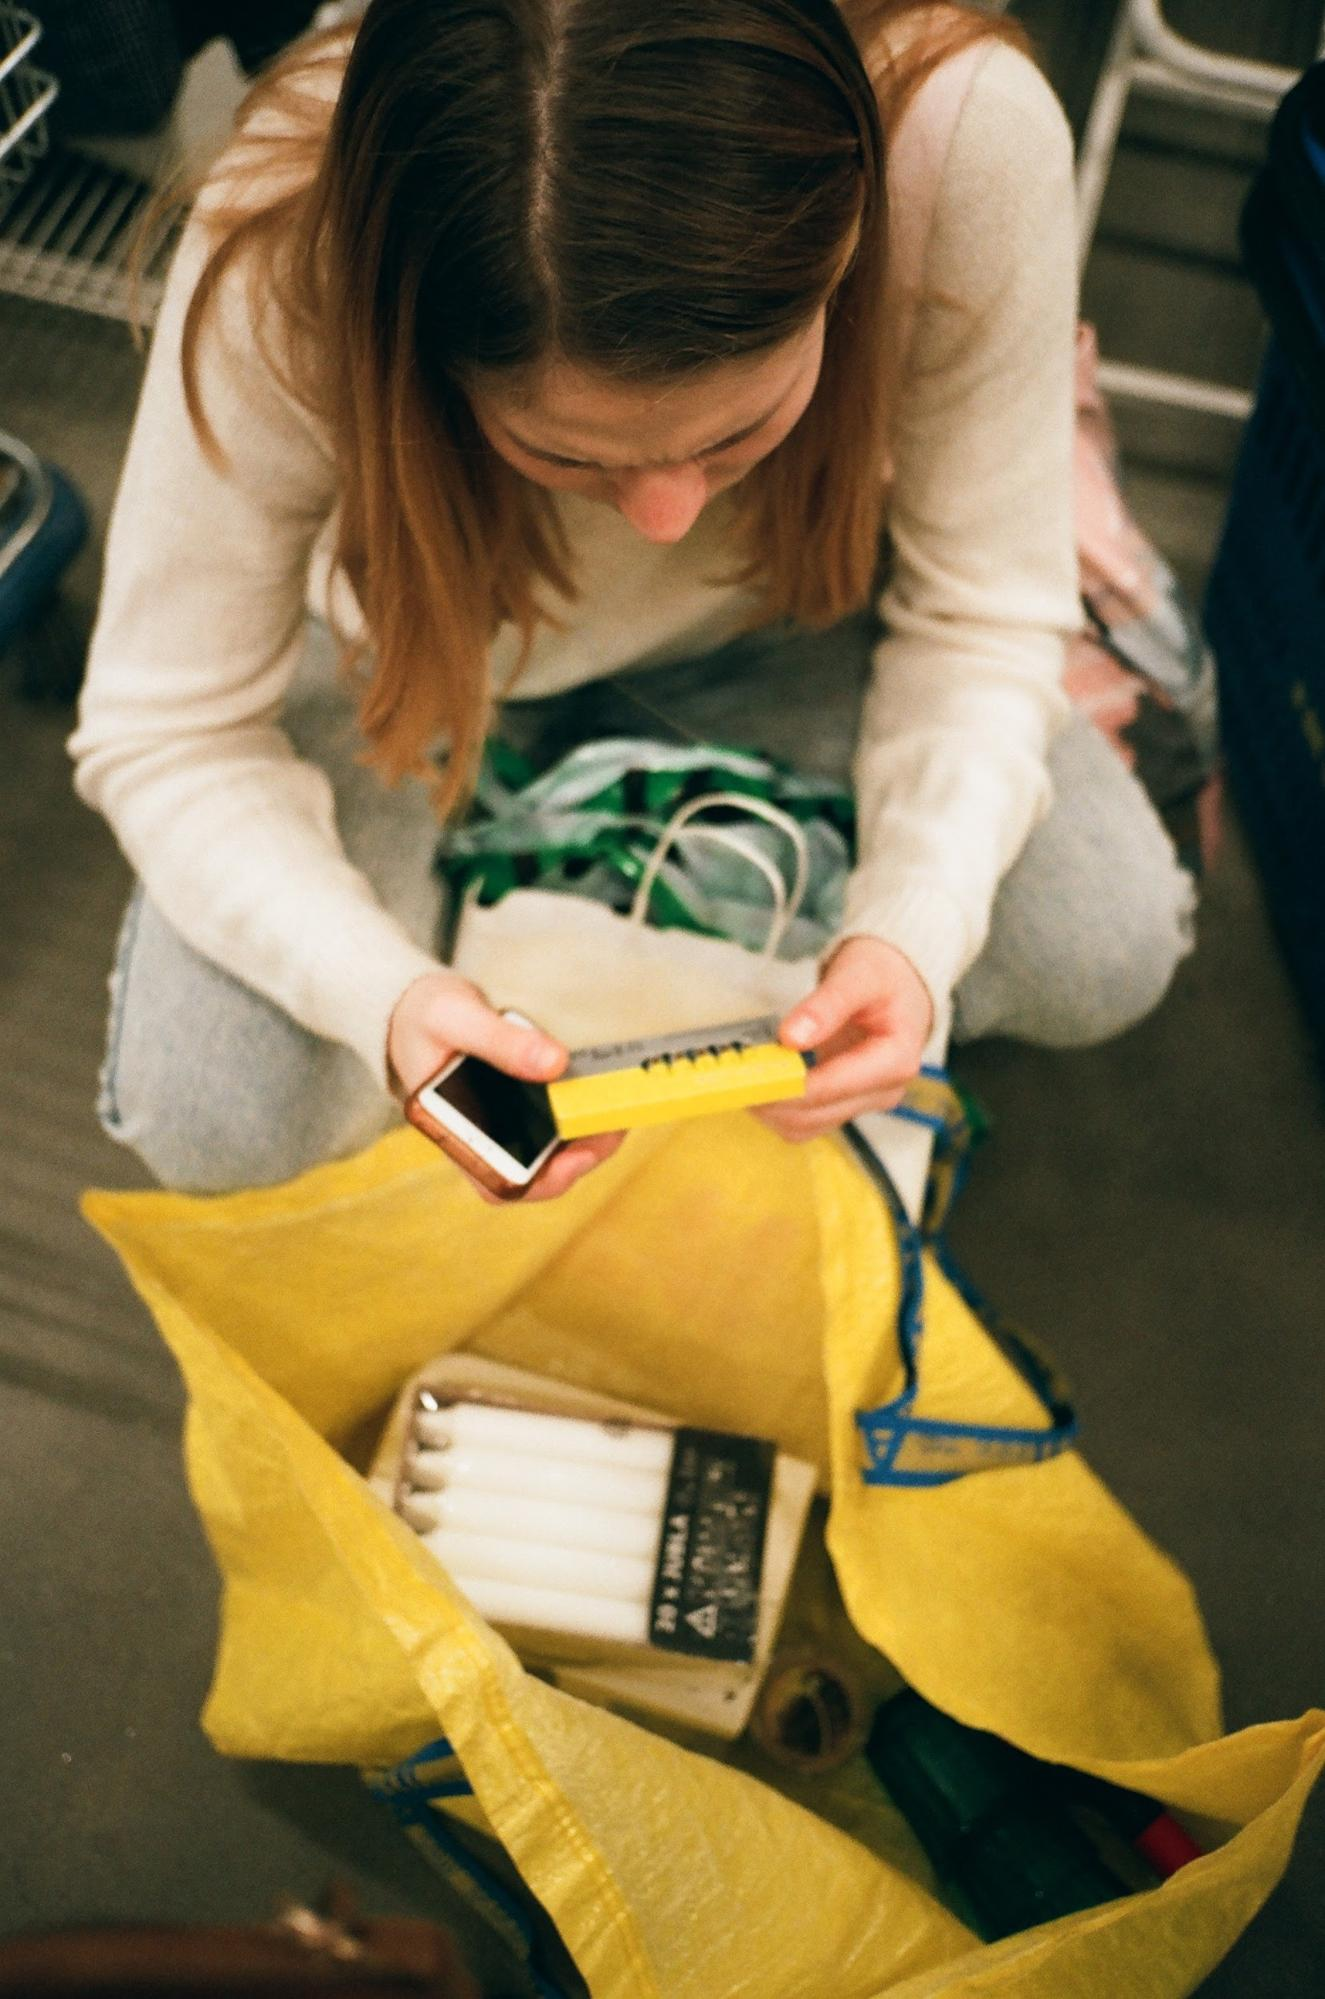 A woman going through her shopping bag